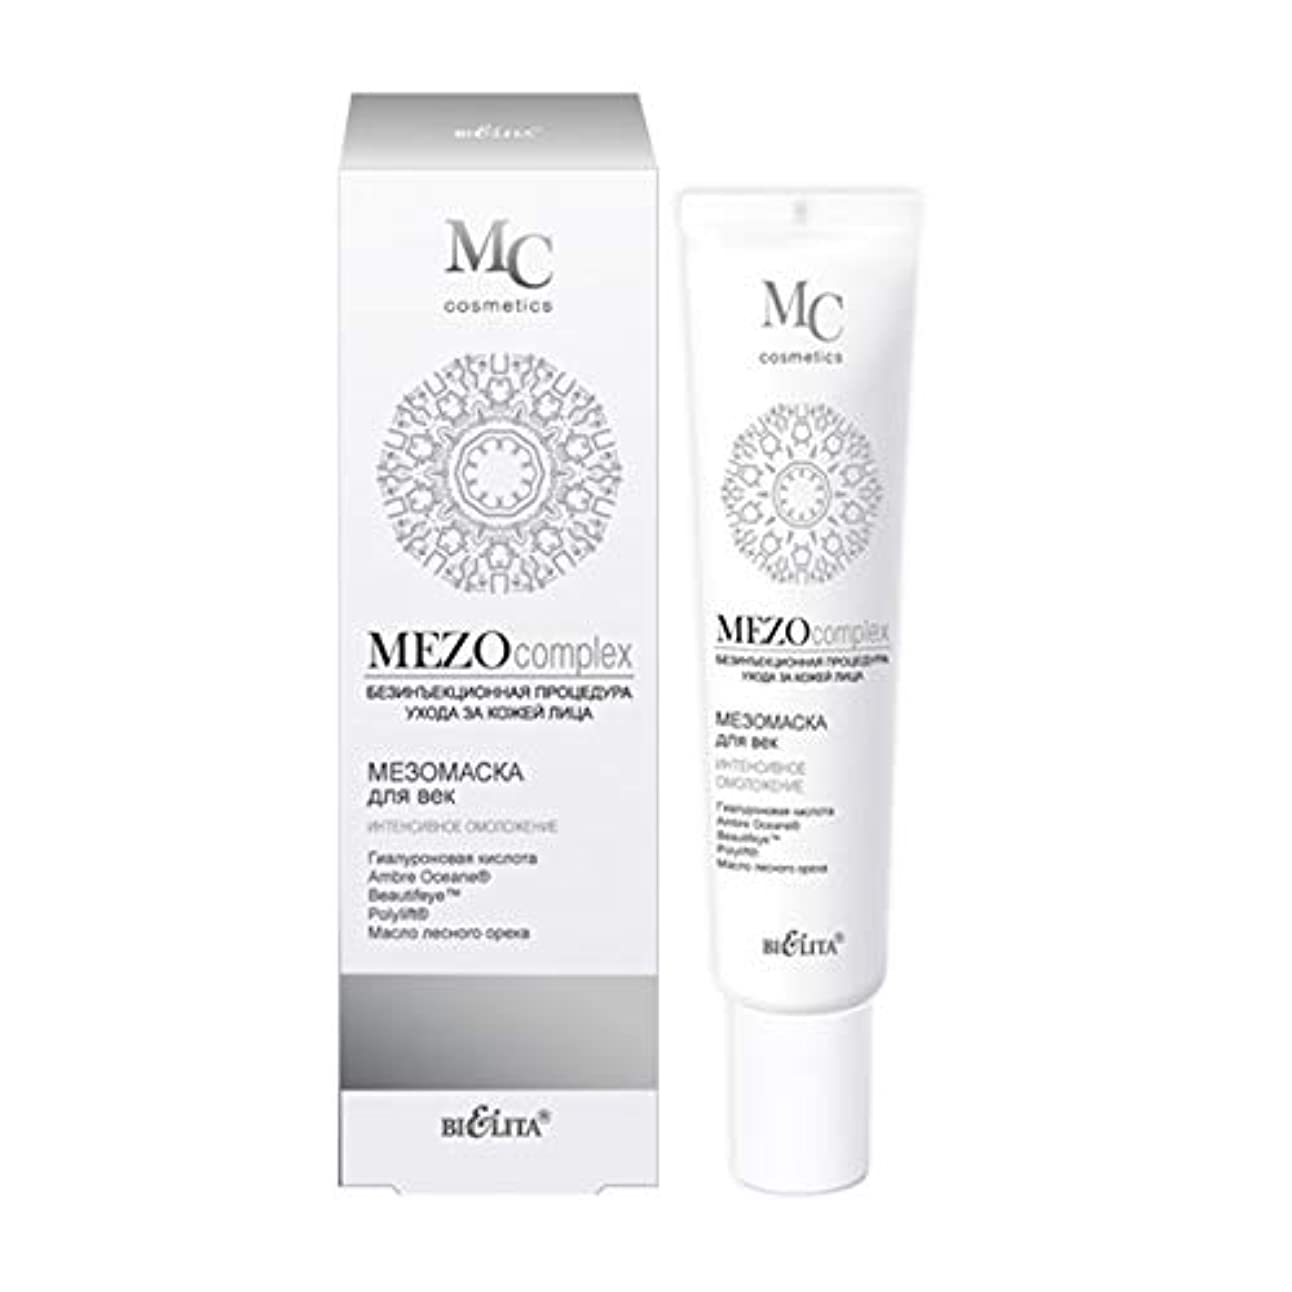 フェリー受ける剃るMezo complex | Mezo MASK for eyelids | Non-injection facial skin care procedure | Hyaluronic acid | Ambre Oceane | Beautifeye | Polylift | Hazelnut oil | Active formula | 30 ml